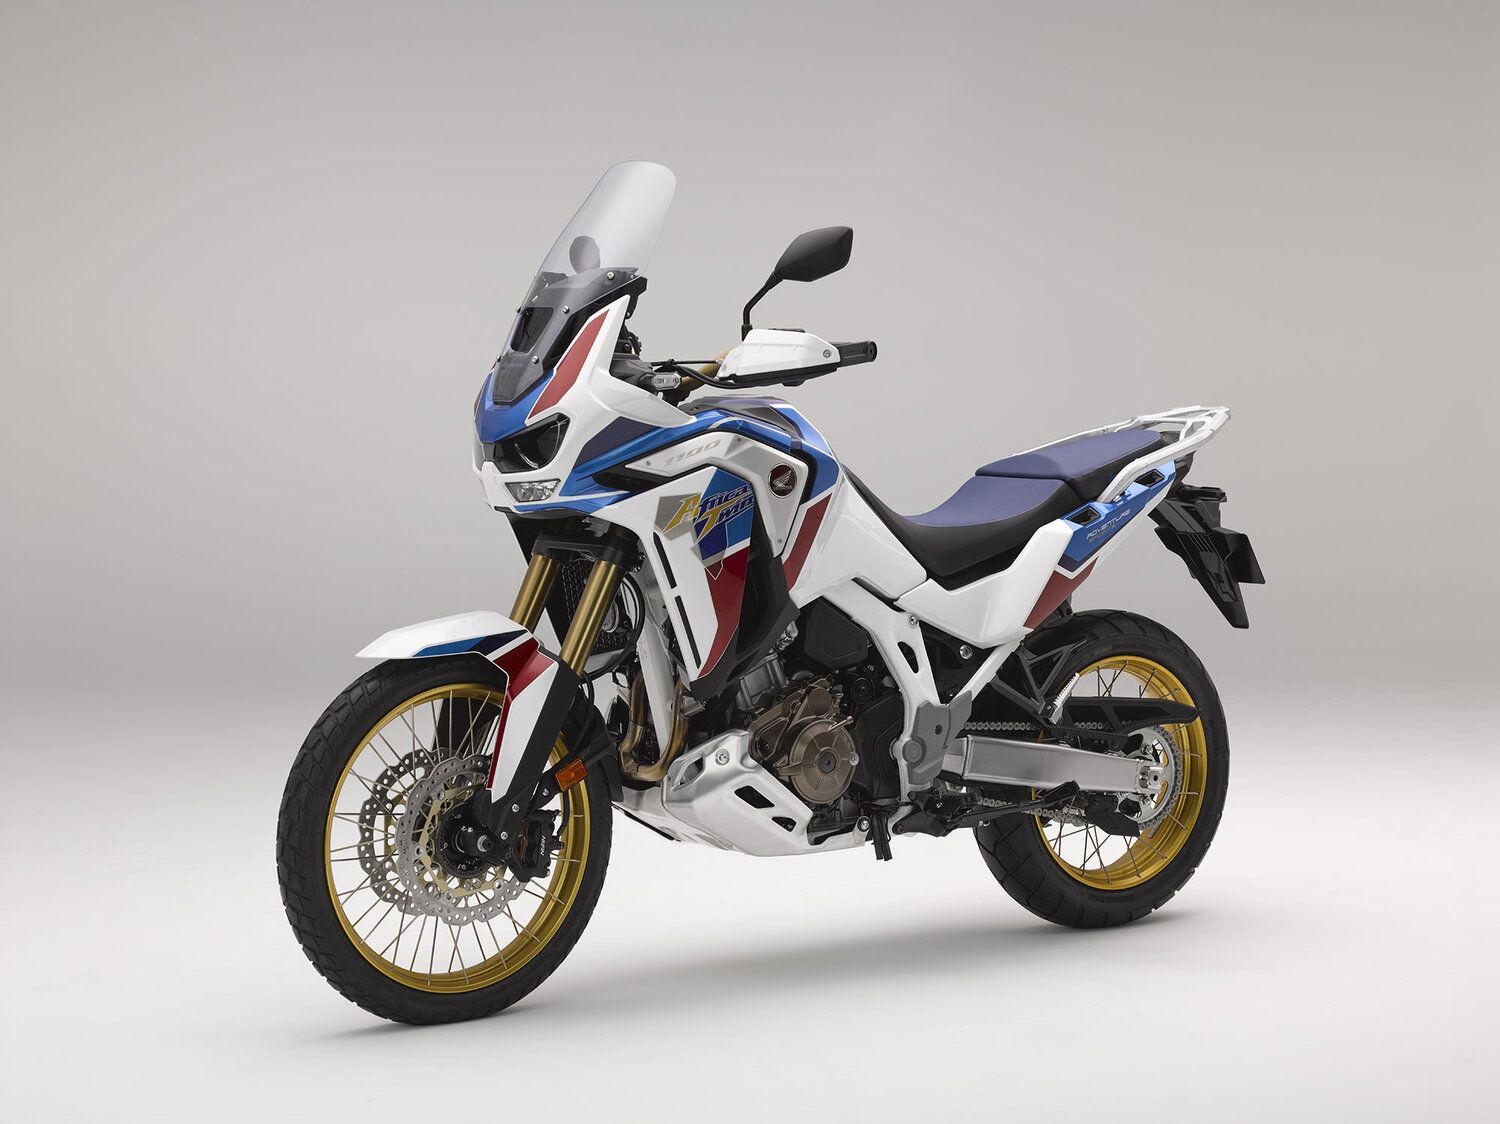 Upshift2020 Honda Africa Twin Platform Offers Increased Options In Adventure Honda Africa Twin Adventure Motorcycling Adventure Bike